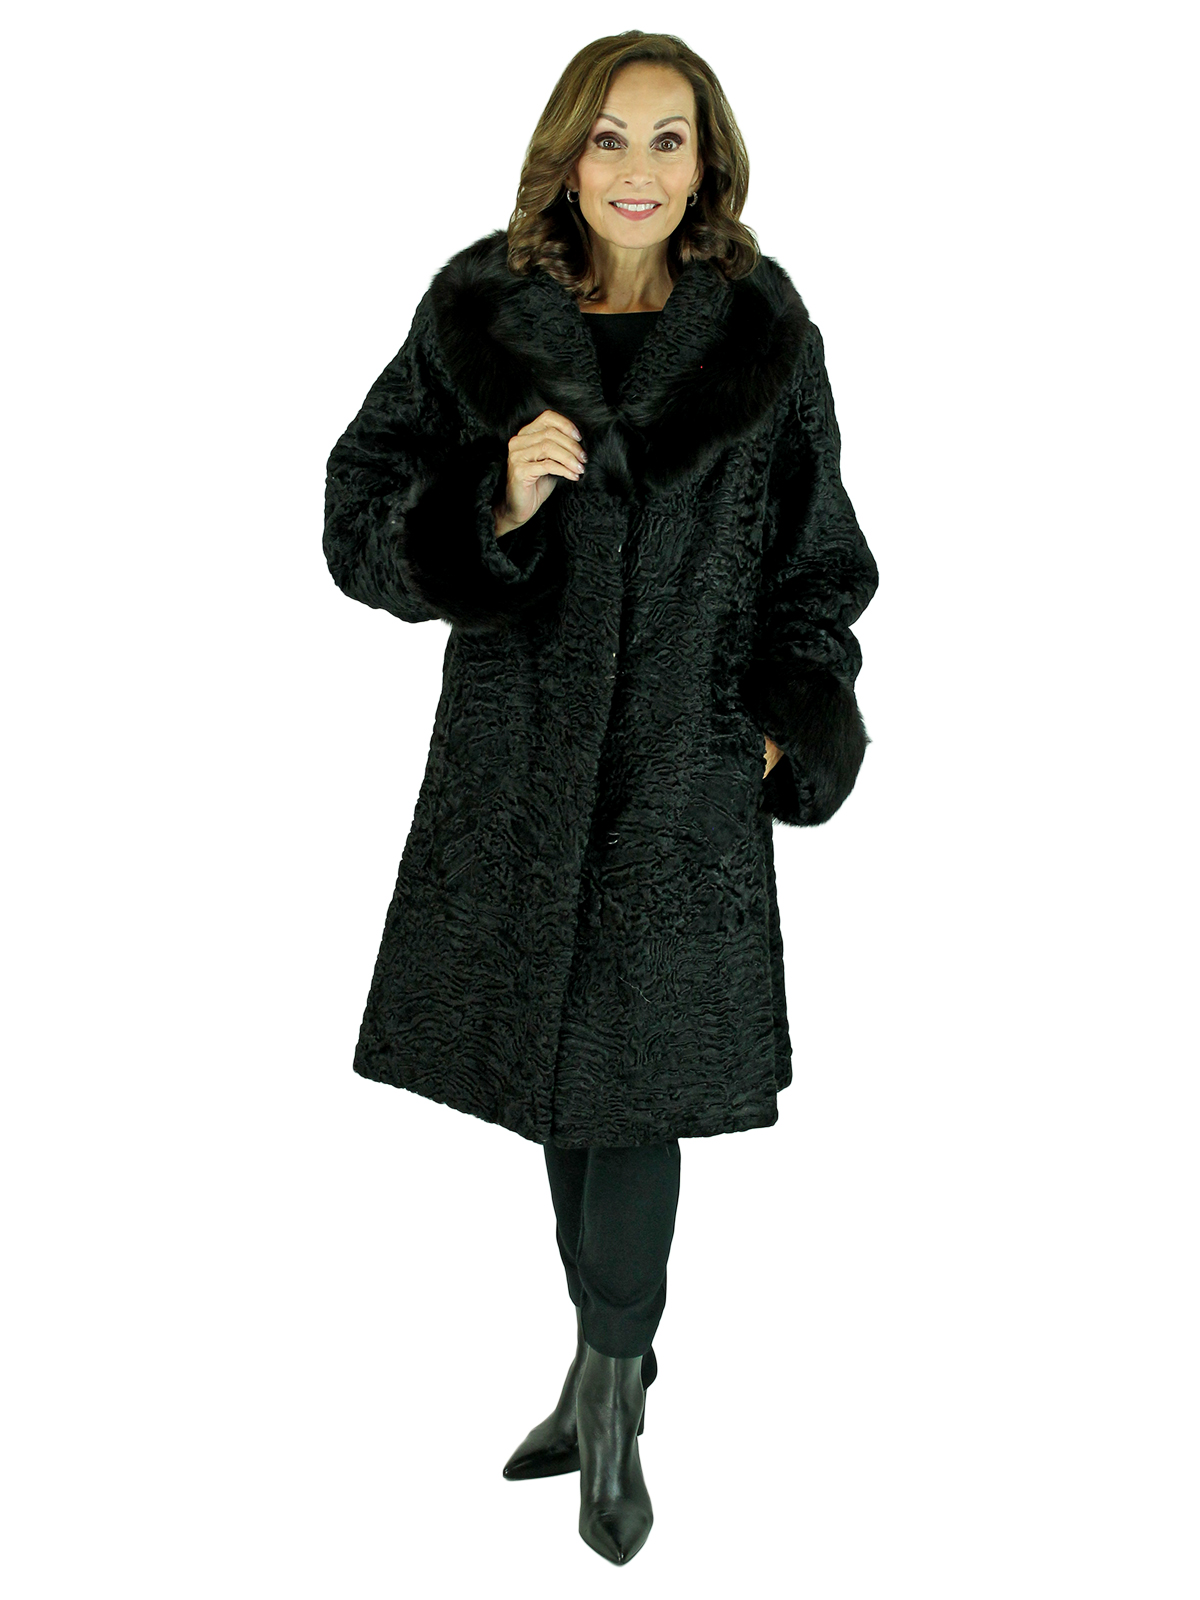 Woman's Black Persian Lamb Fur Stroller with Fox Collar and Cuffs